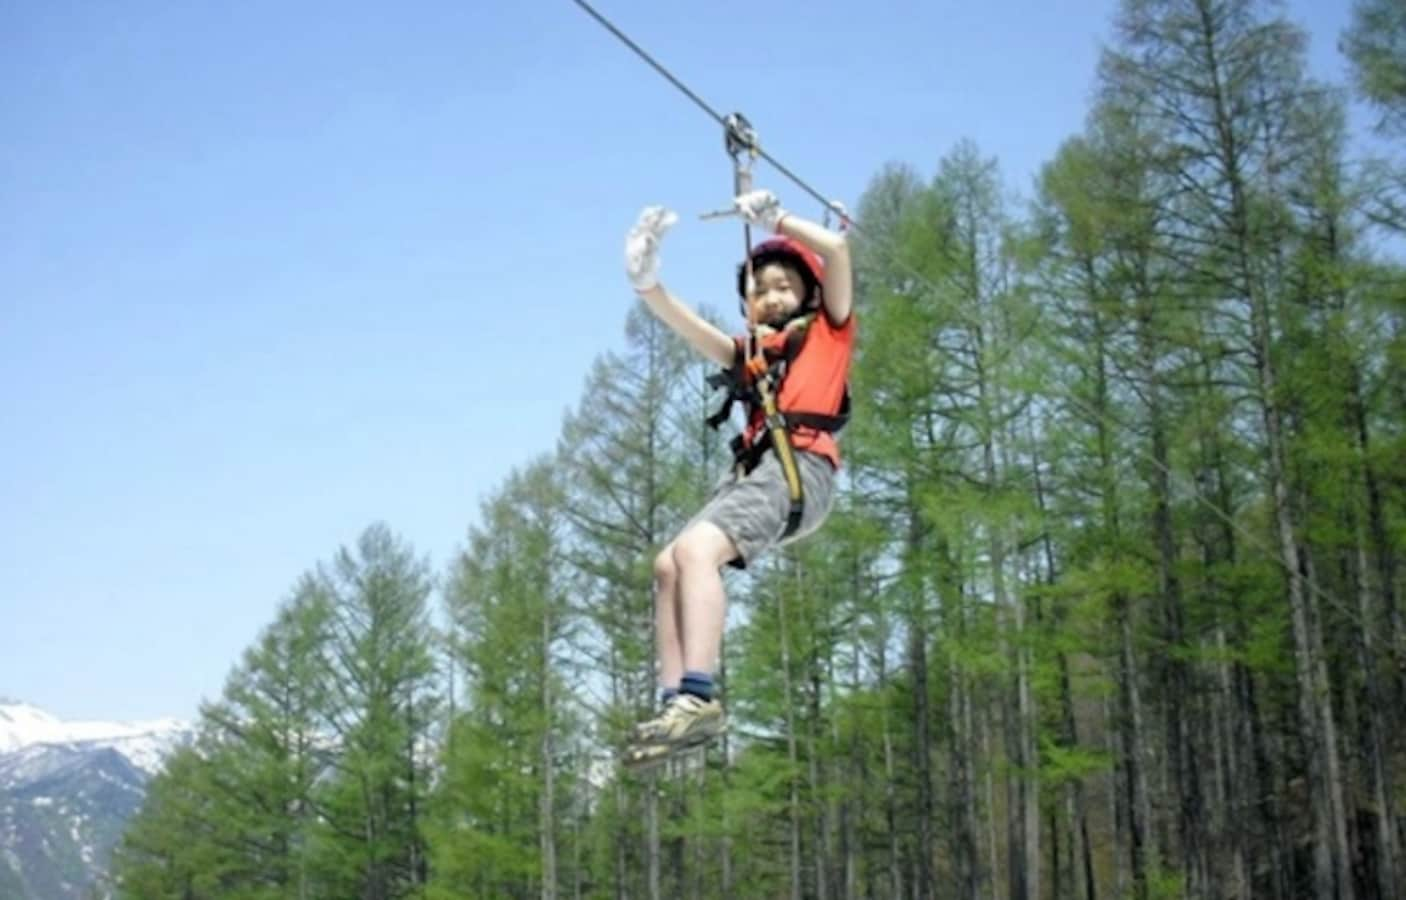 Zipline Adventures Accessible From Tokyo All About Japan